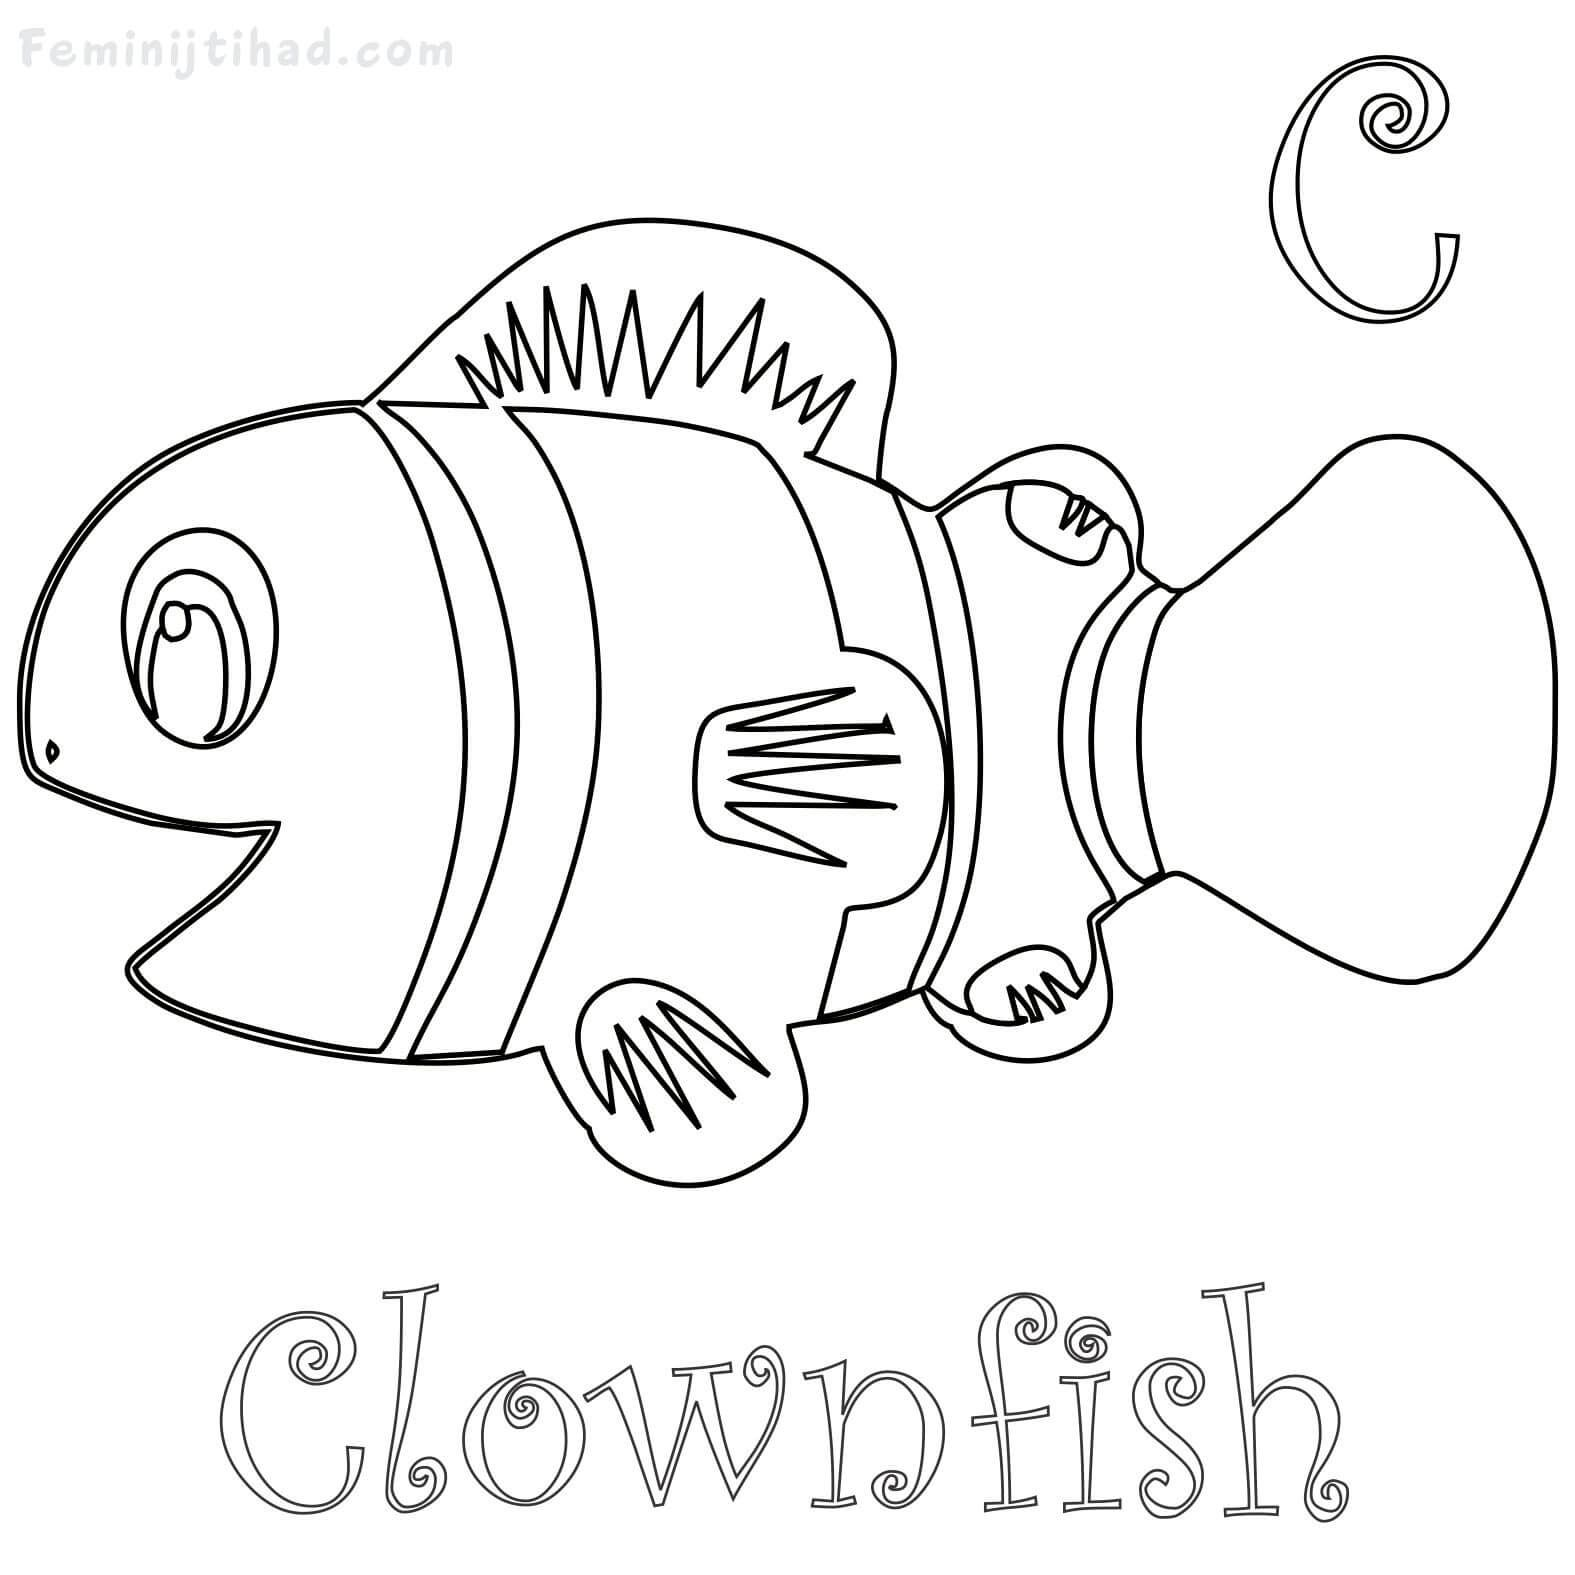 C For Clownfish Coloring Pages Printable Free Coloring Sheets Fish Coloring Page Animal Coloring Pages Clown Fish